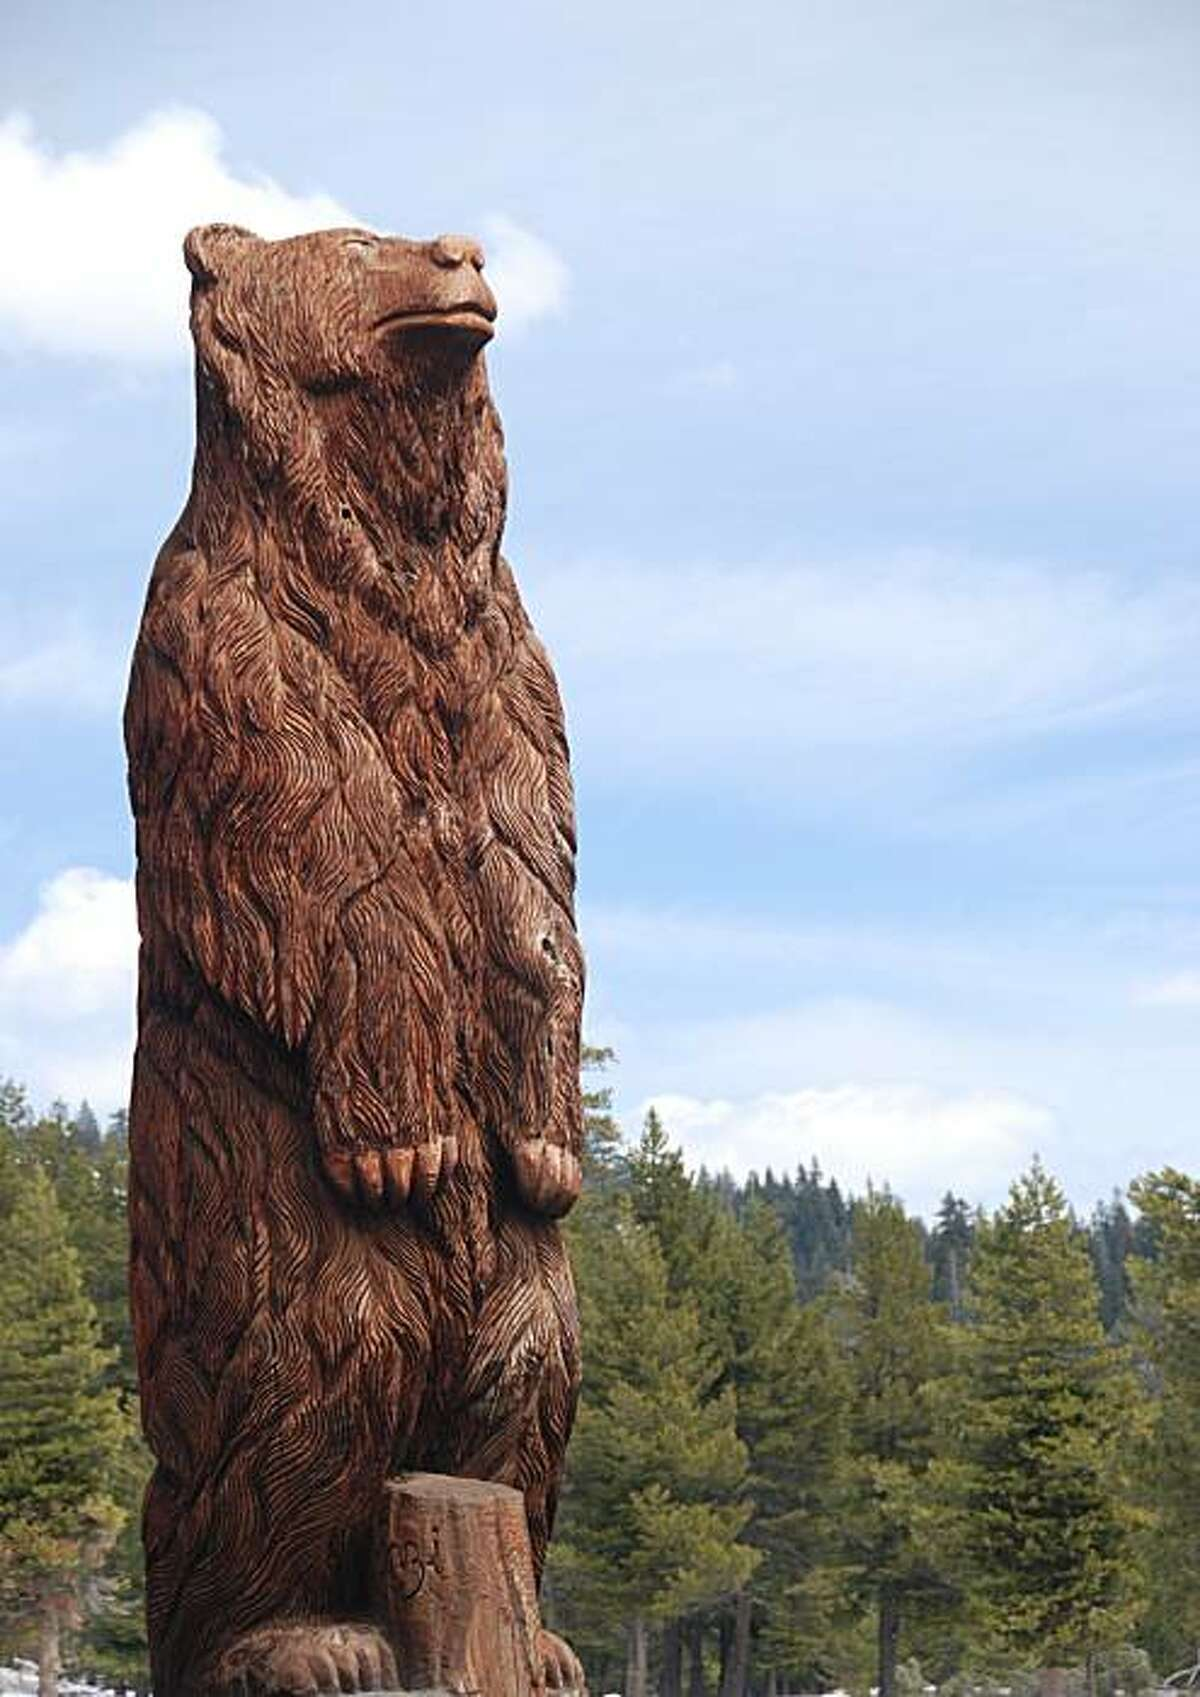 Huge carved bear at the entrance to Bear Valley.